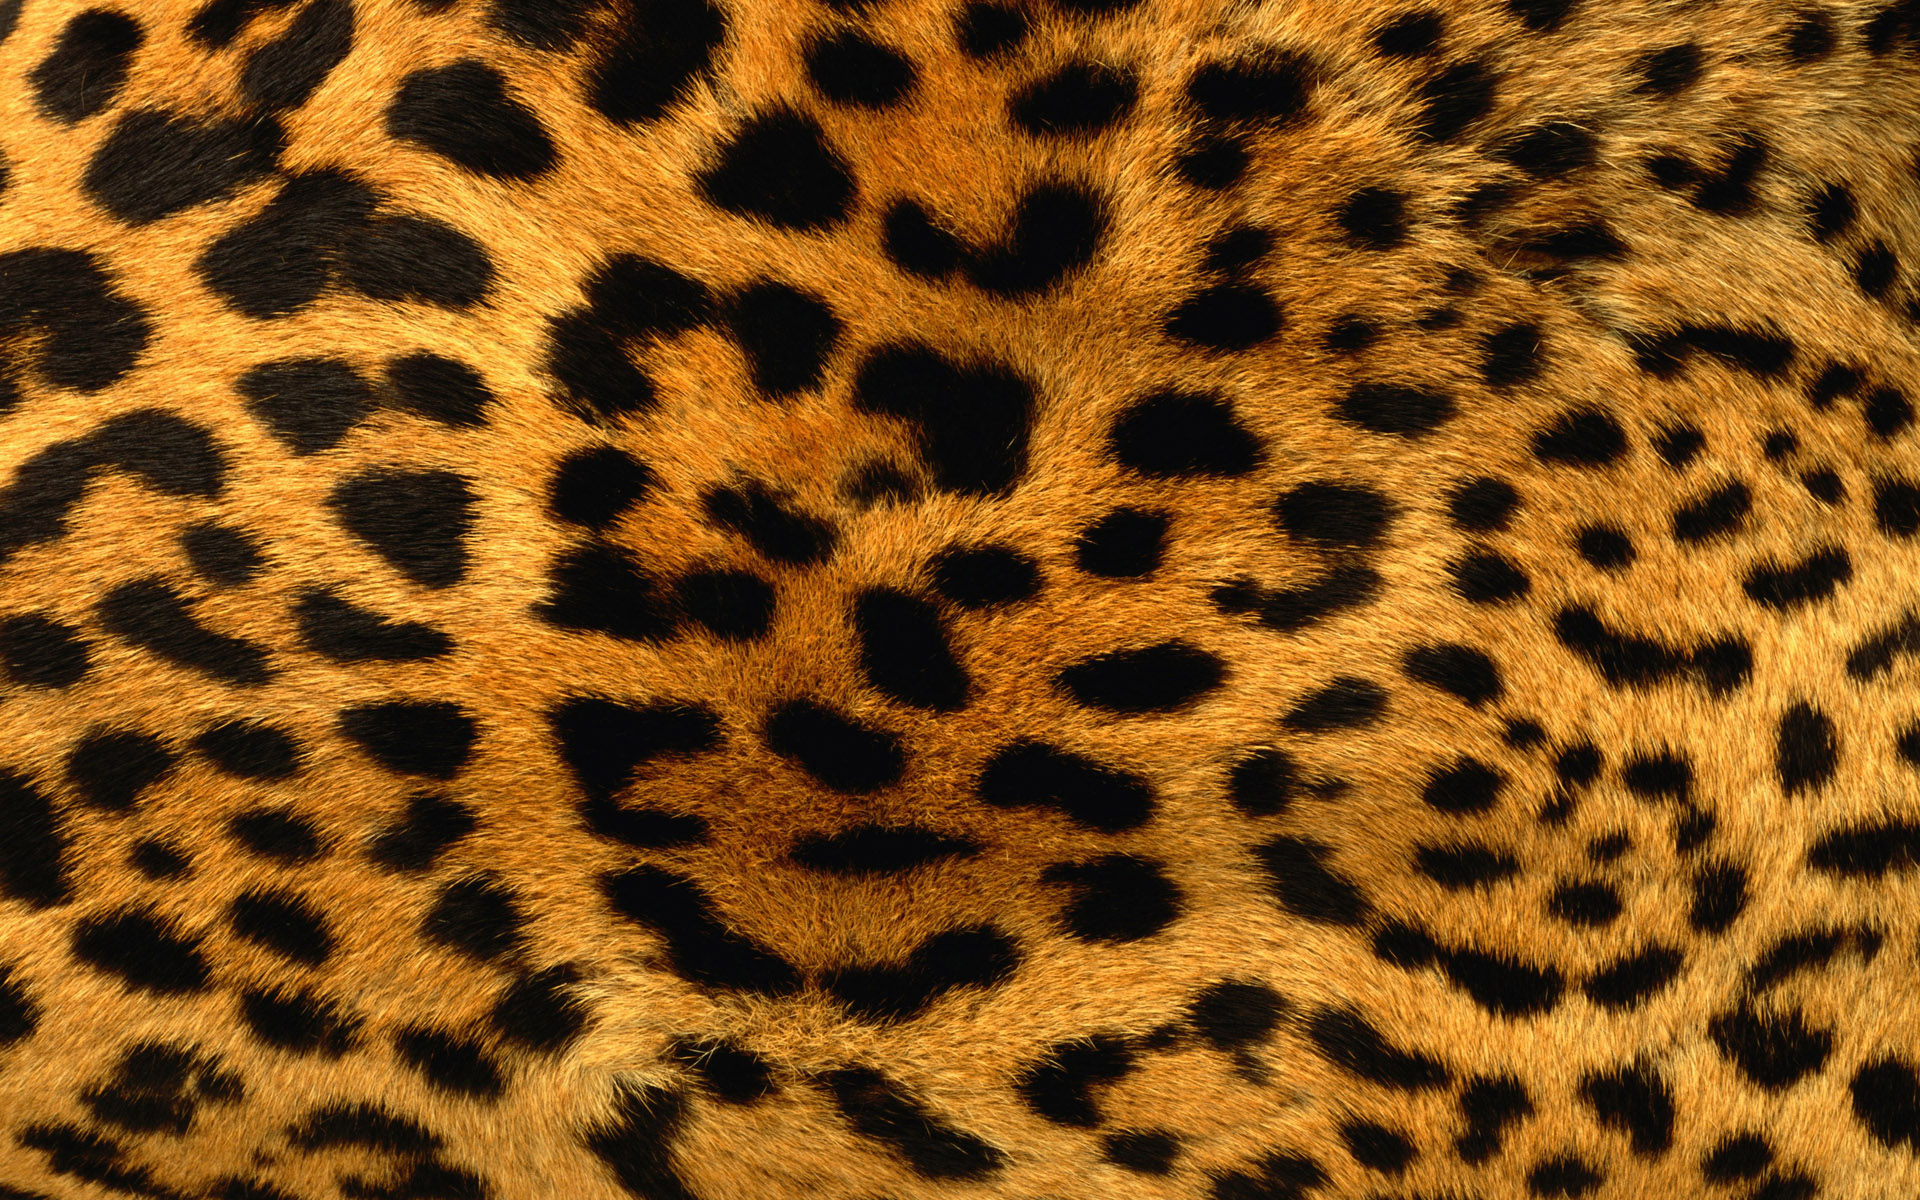 Leopard Print Wallpaper 18814